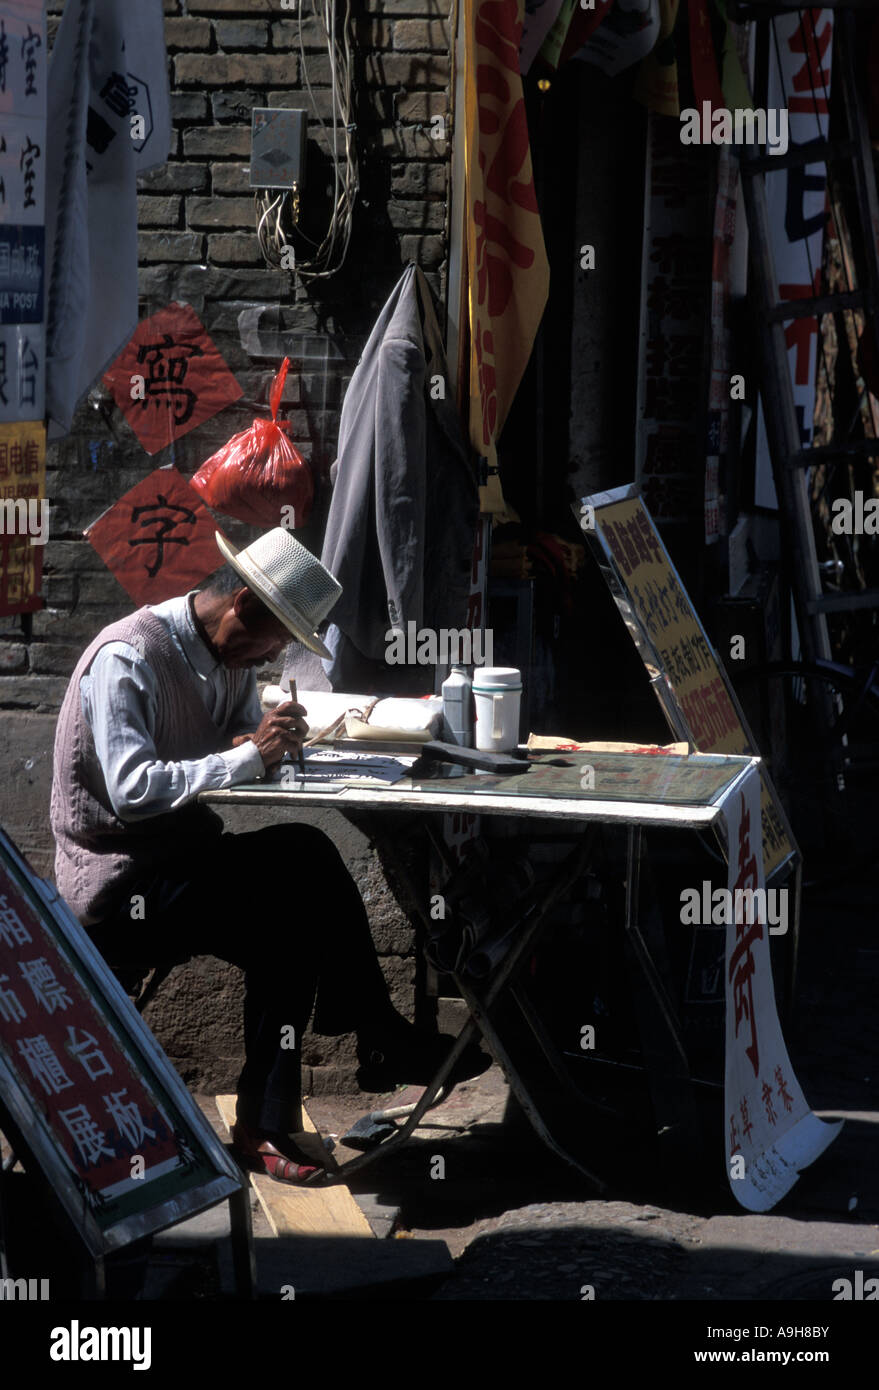 Scribe doing calligraphy on the streets of Chengdu China - Stock Image